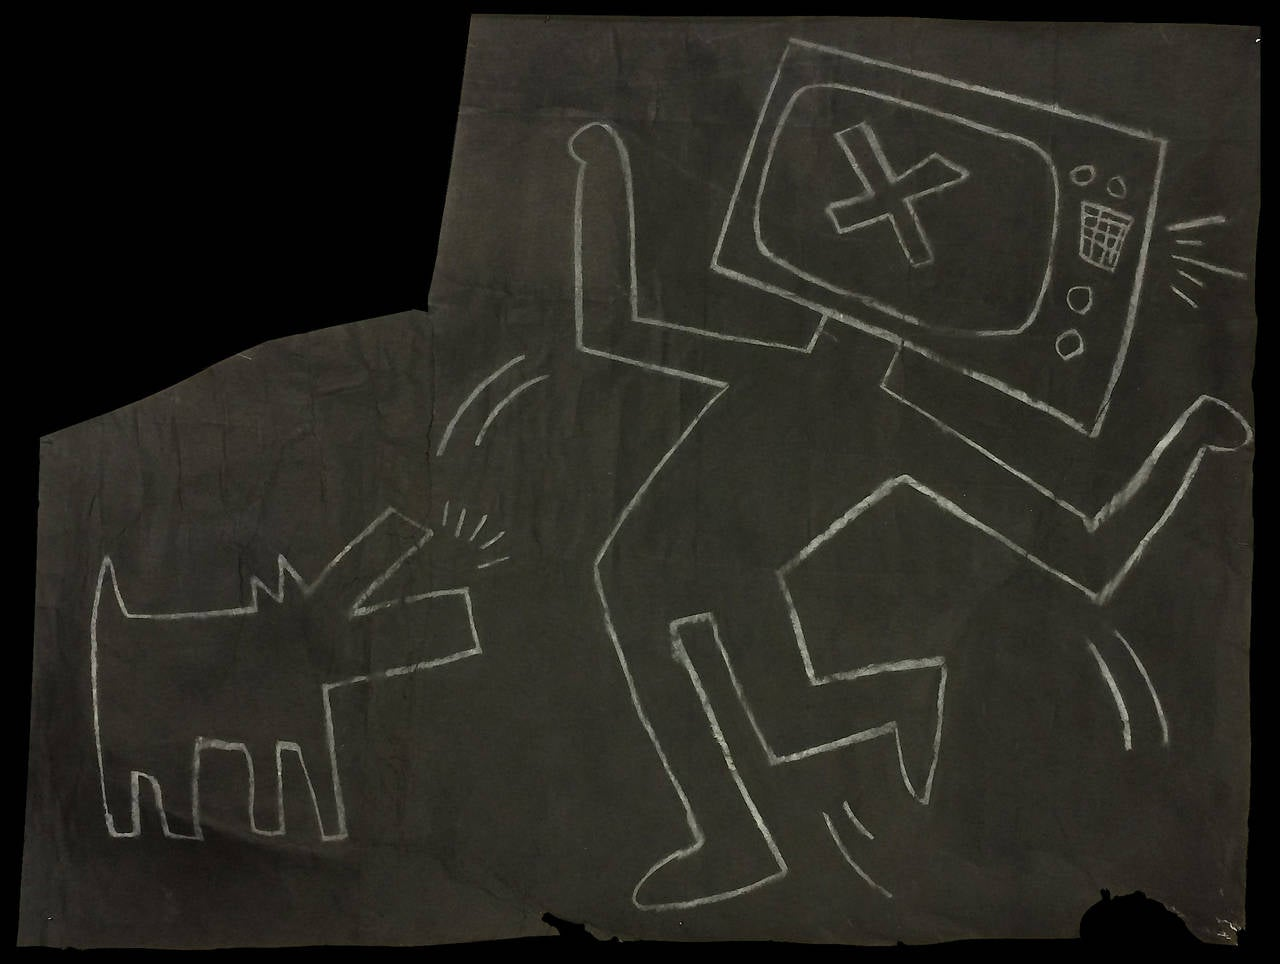 Keith Haring Figurative Art - TV Man with Barking Dog